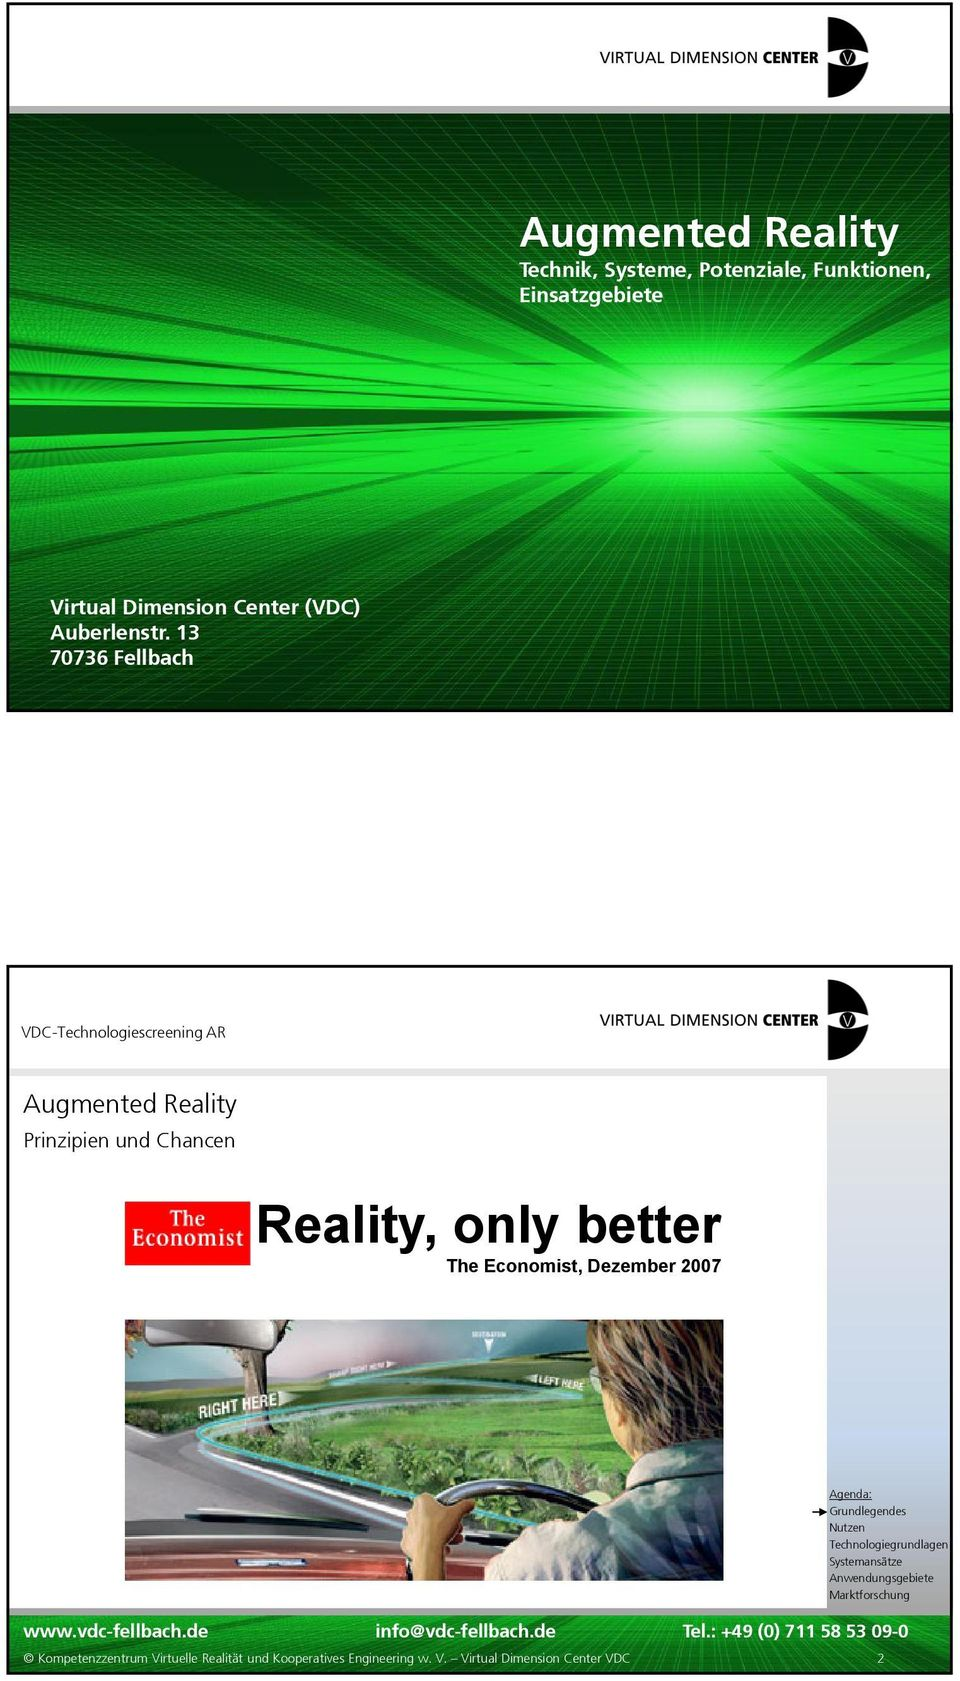 13 70736 Fellbach Augmented Reality Prinzipien und Chancen Reality, only better The